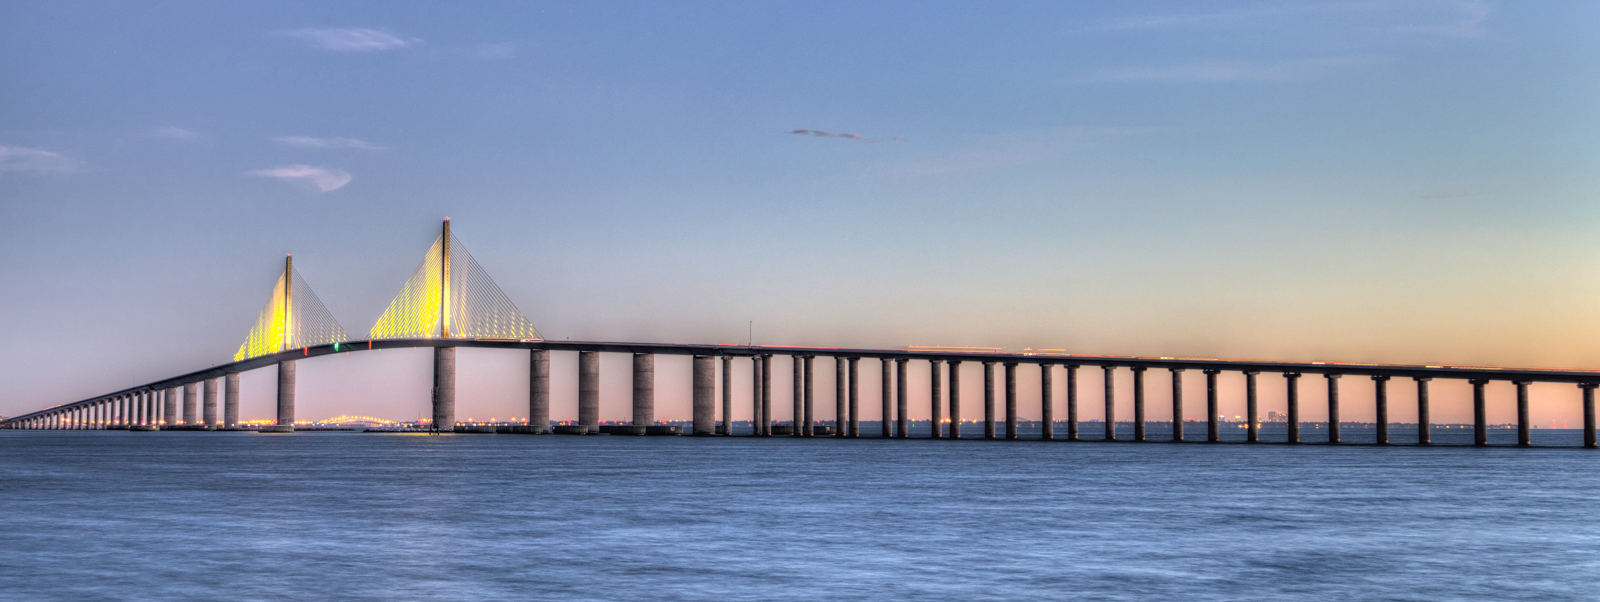 Sunshine Skyway Bridge Pano